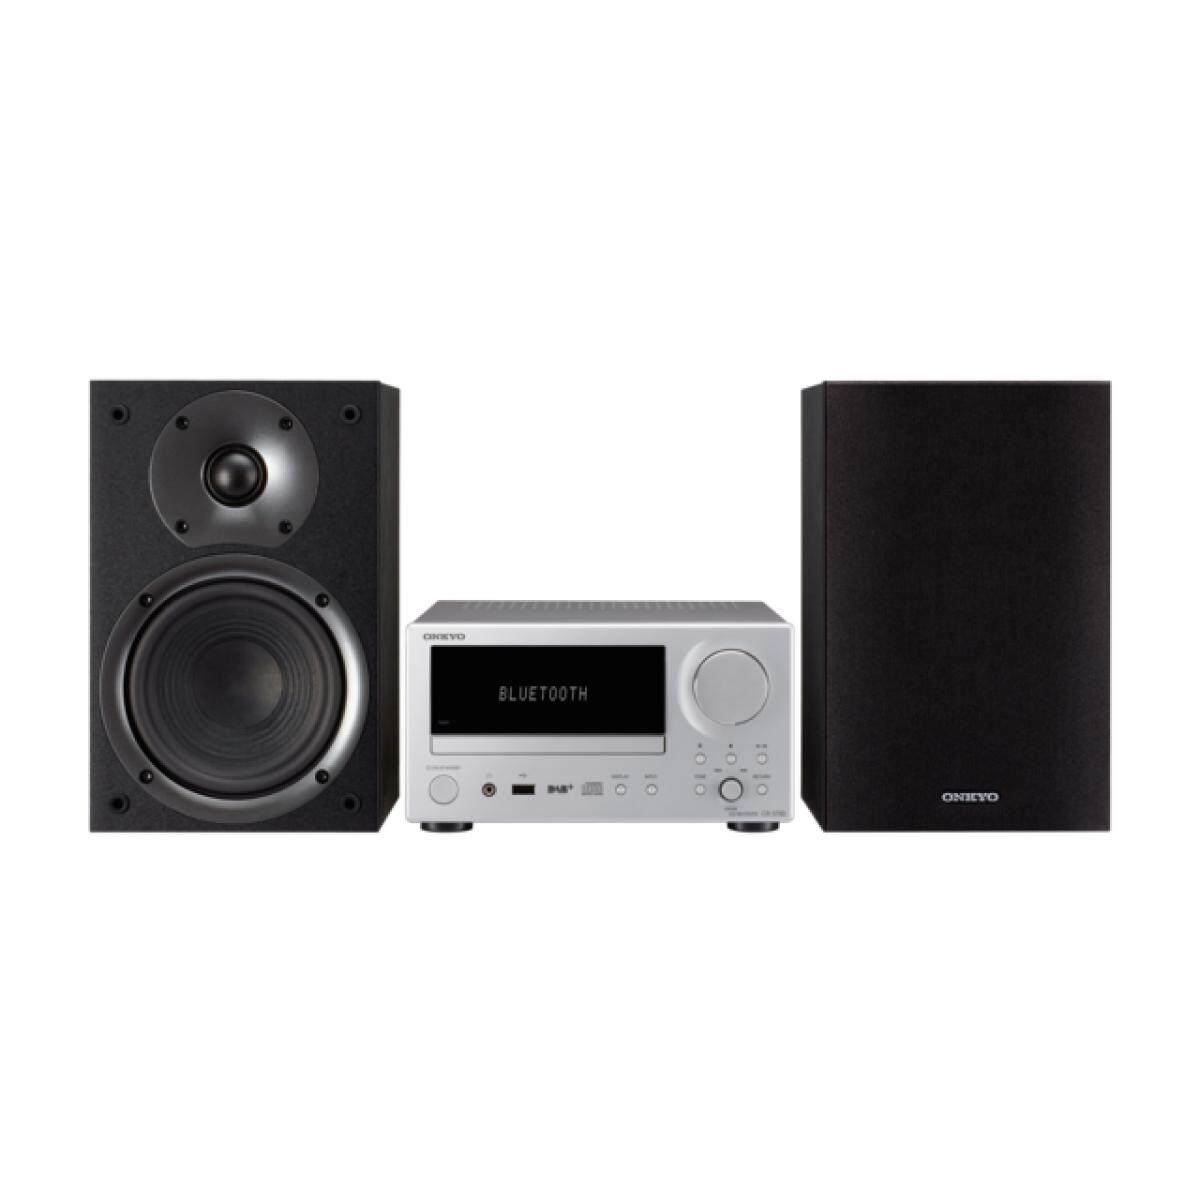 hight resolution of onkyo cs 375d cd receiver system